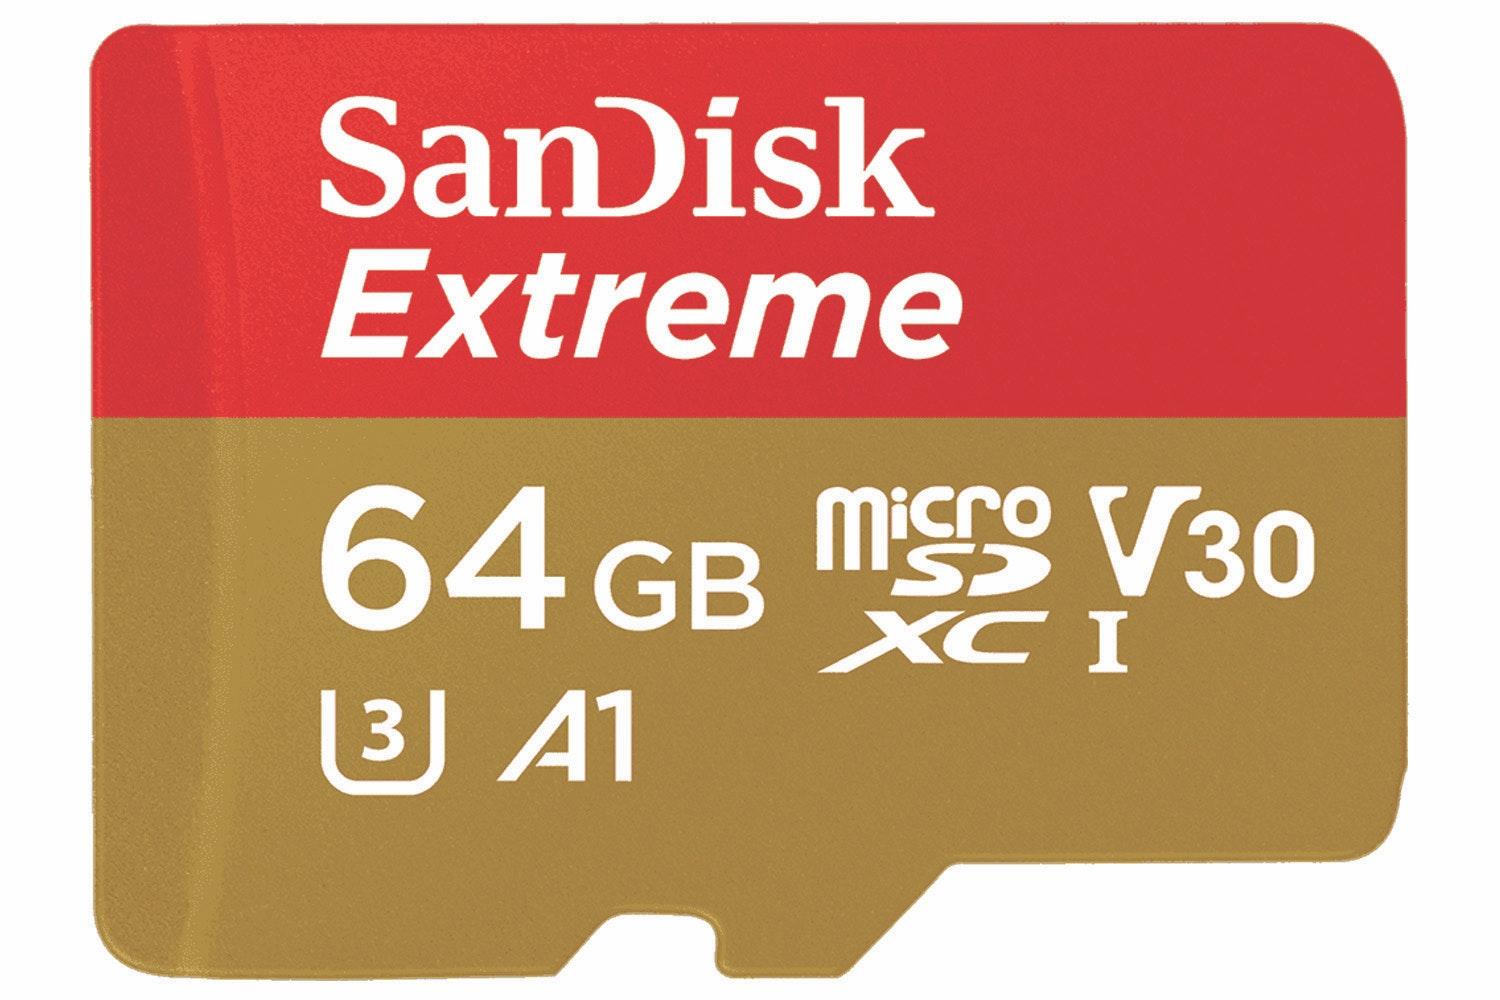 Sandisk Extreme Micro SD Card | 64GB